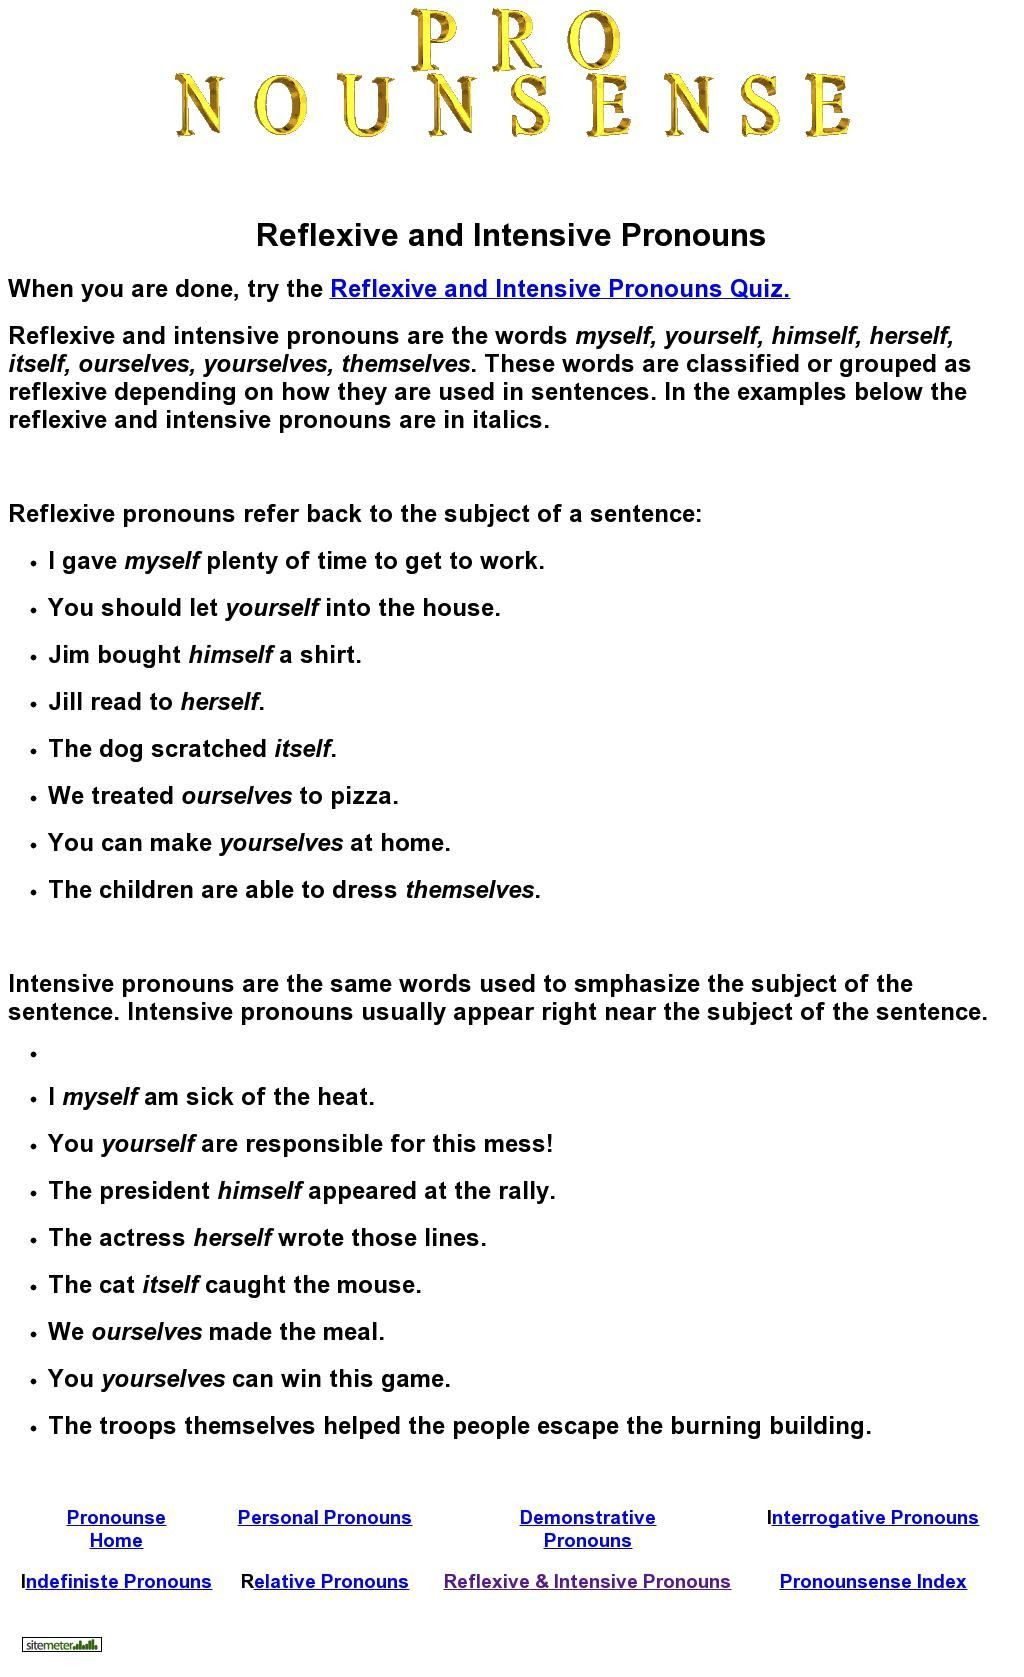 Relative Pronouns Worksheets 4th Grade In 2021 Intensive Pronouns Relative Pronouns Pronoun Worksheets [ 1677 x 1024 Pixel ]